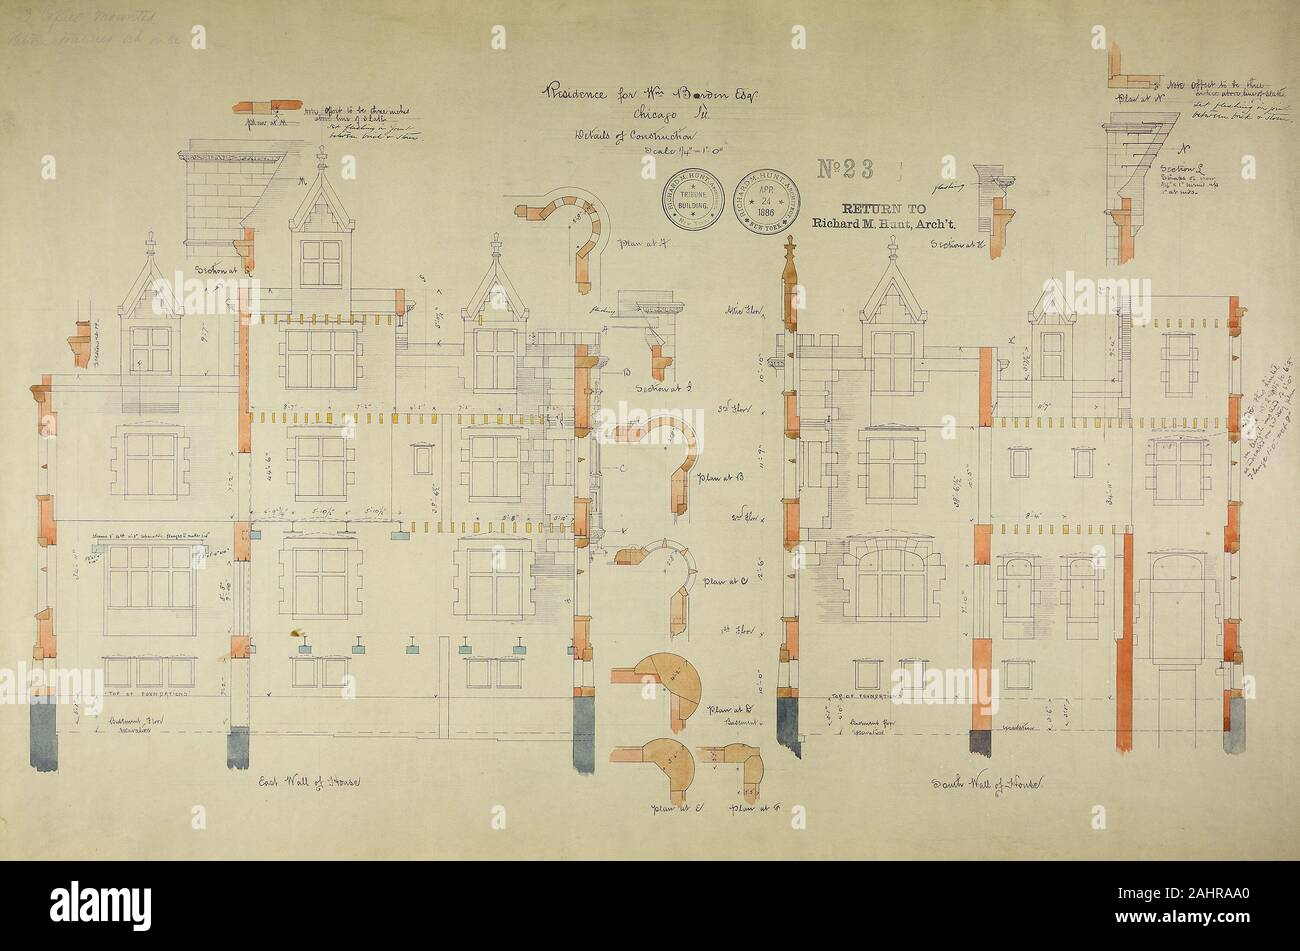 Richard Morris Hunt (Architect). William Borden Residence, Chicago, Illinois, Construction Details. 1885–1886. Chicago. Watercolor on hectographic print, mounted on linen Stock Photo